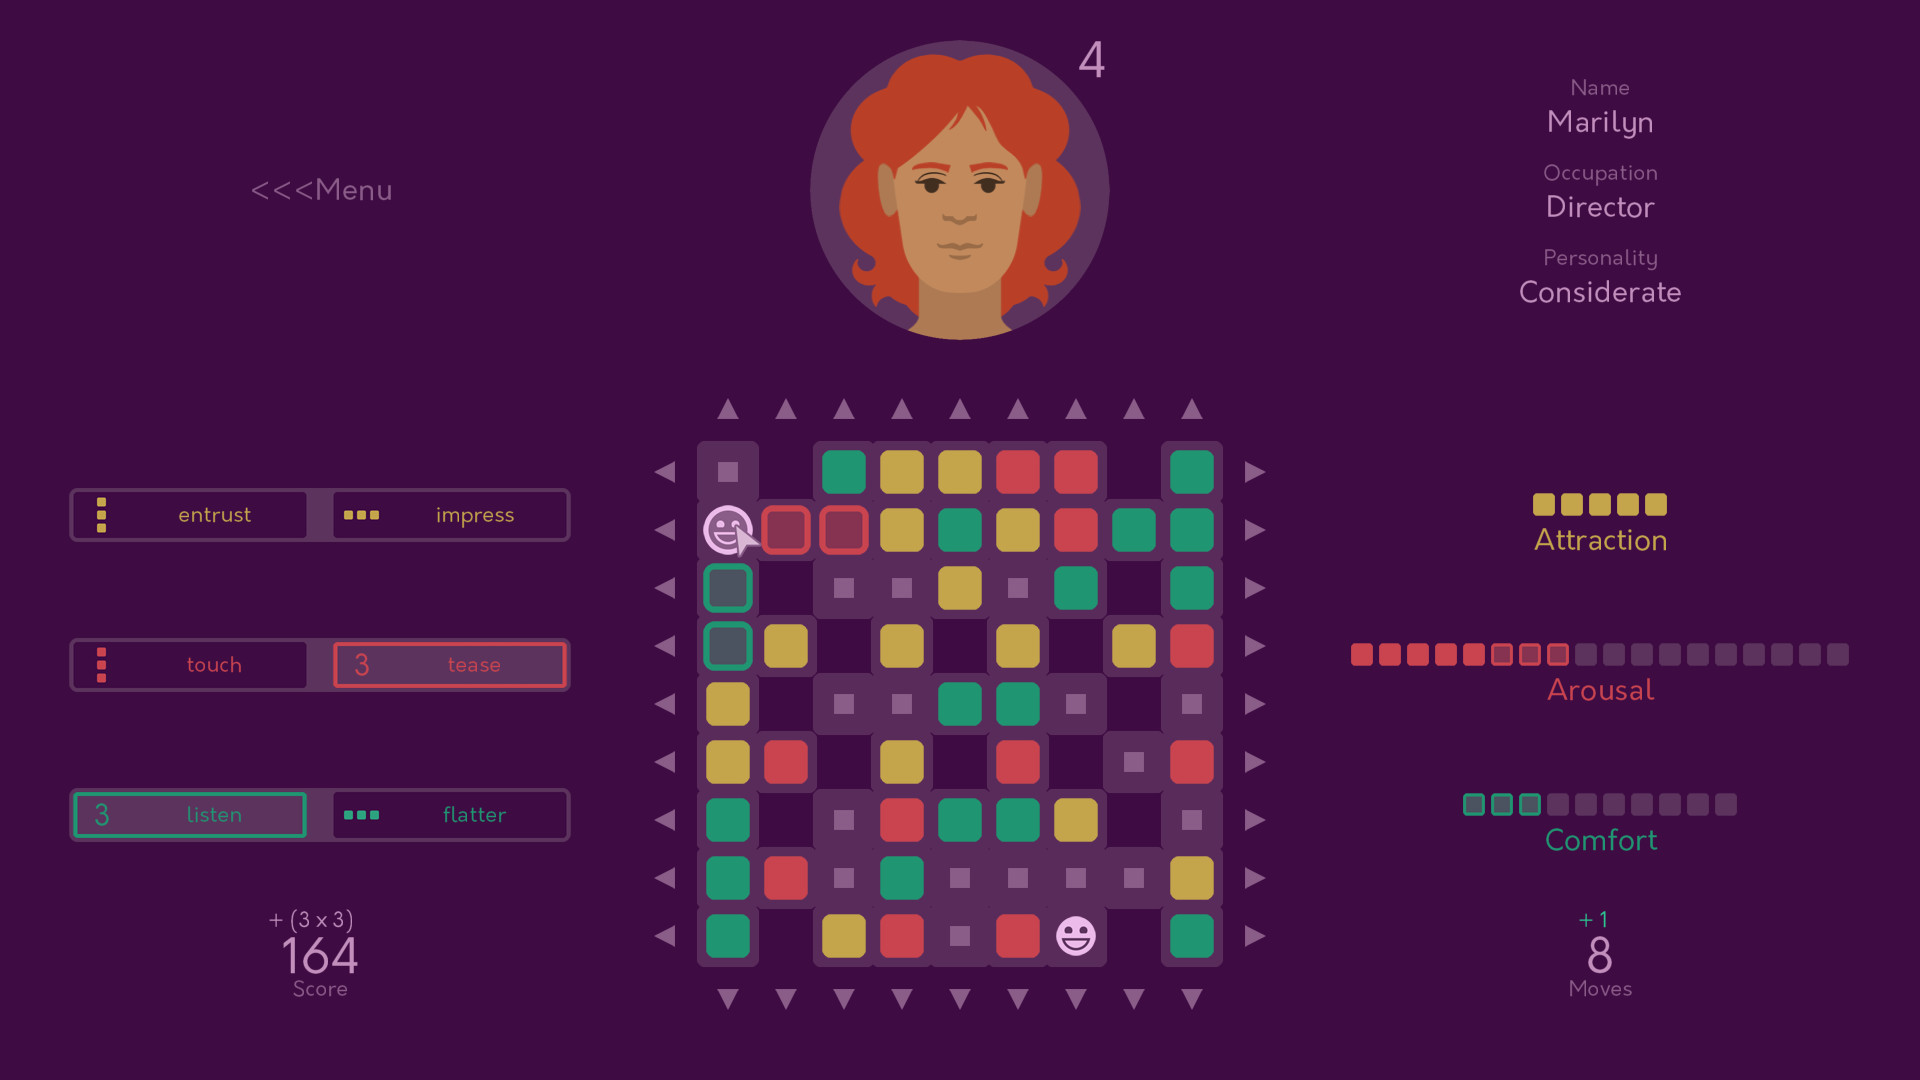 A feminine face is situated above a board of coloured squares. To the right side are bars indicating levels of 'Attraction', 'Arousal', and 'Comfort'.